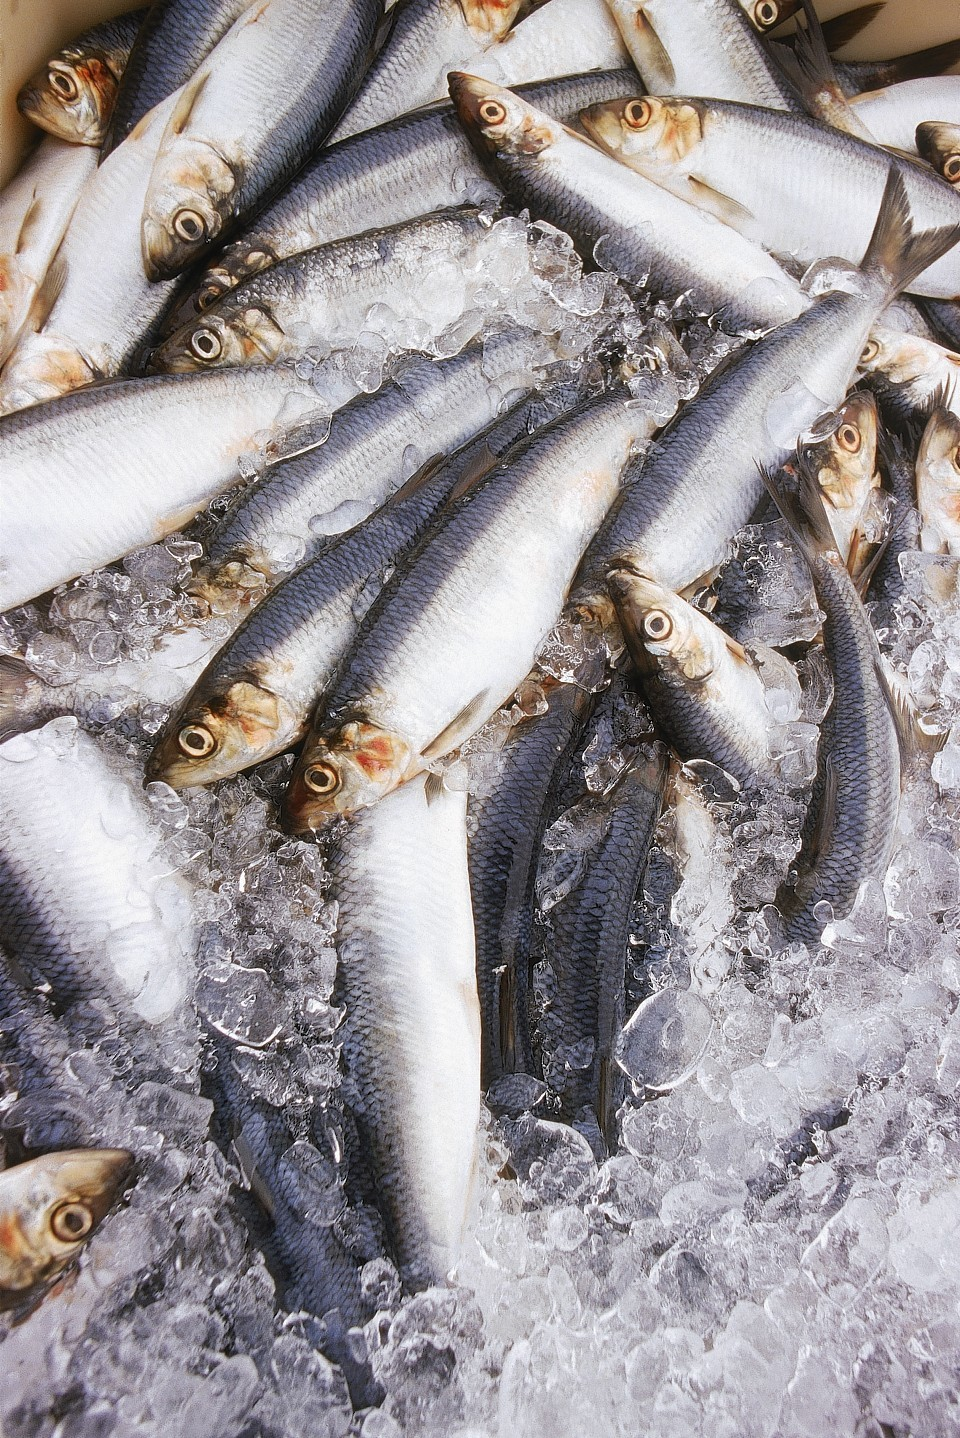 Herring is at the heart of the row over trade sanctions